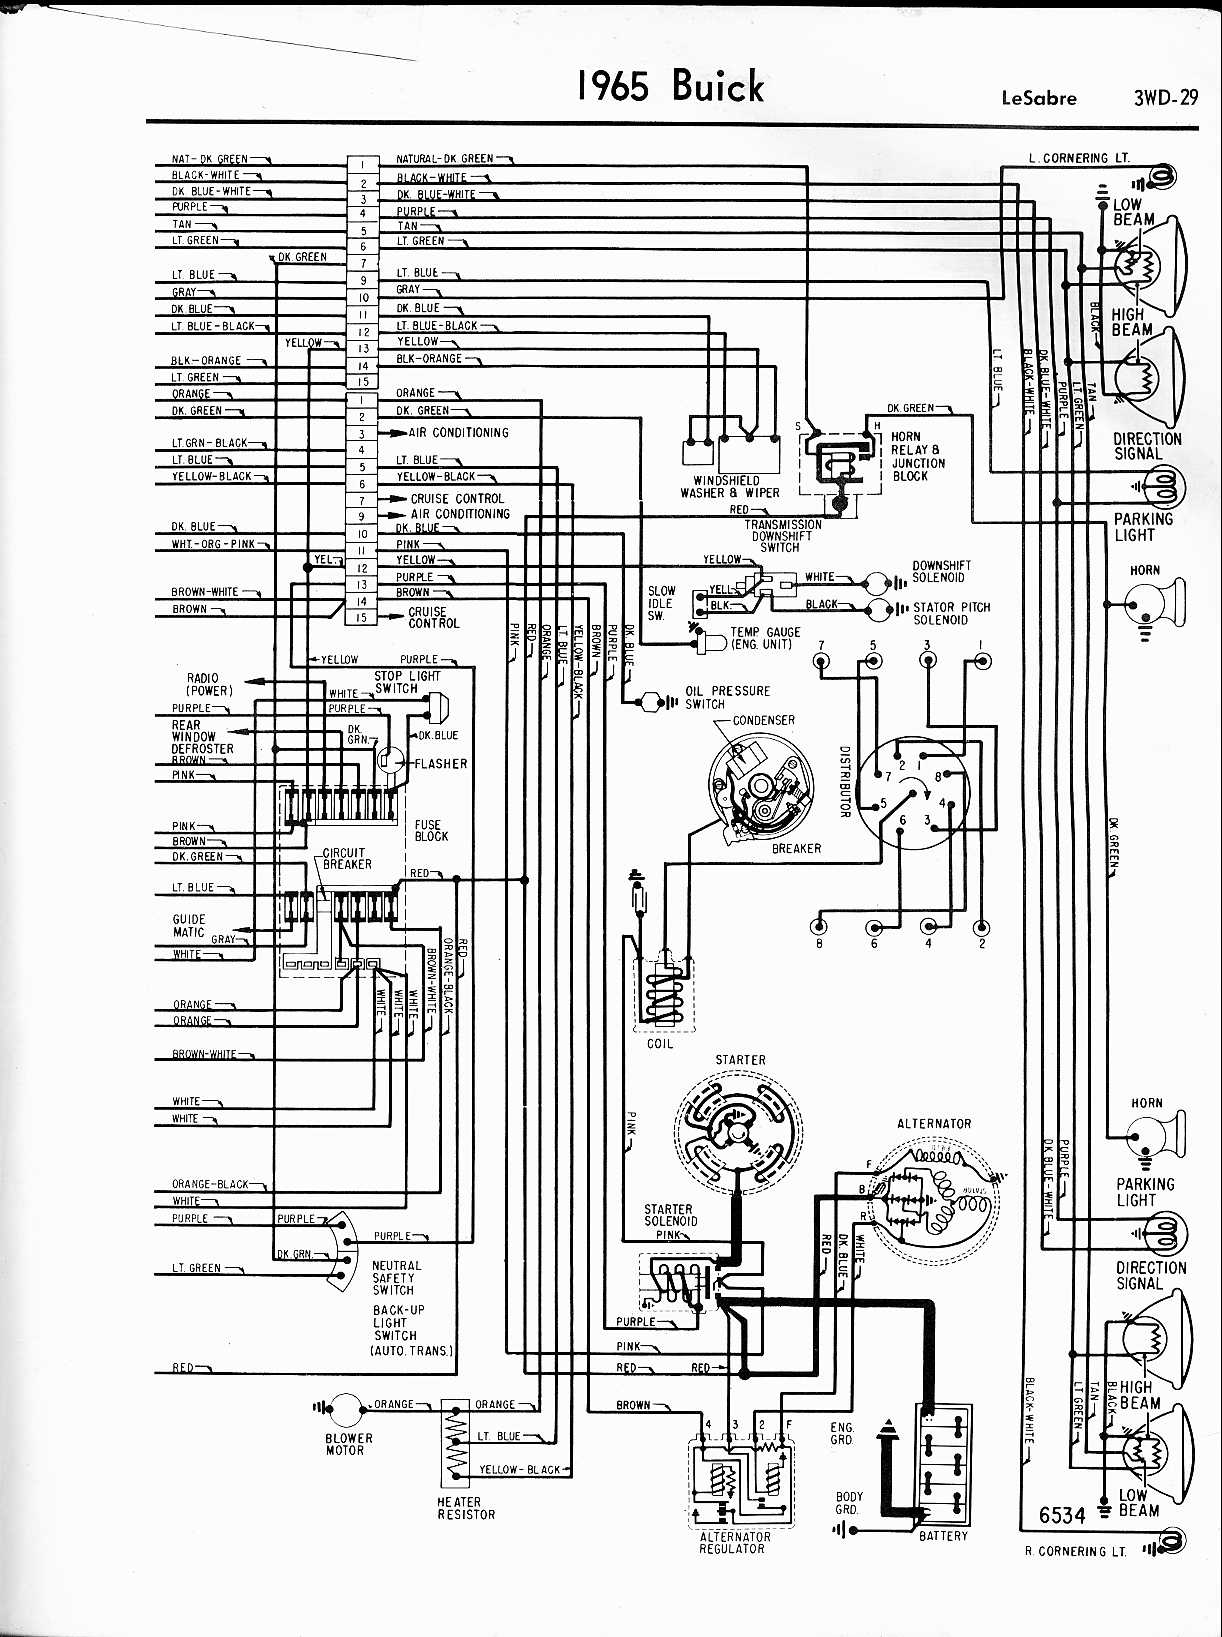 1967 Buick Lesabre Wiring Diagrams Best Secret Diagram Fuse Box 97 1997 Skylark Third Level Rh 9 8 15 Jacobwinterstein Com 2002 1994